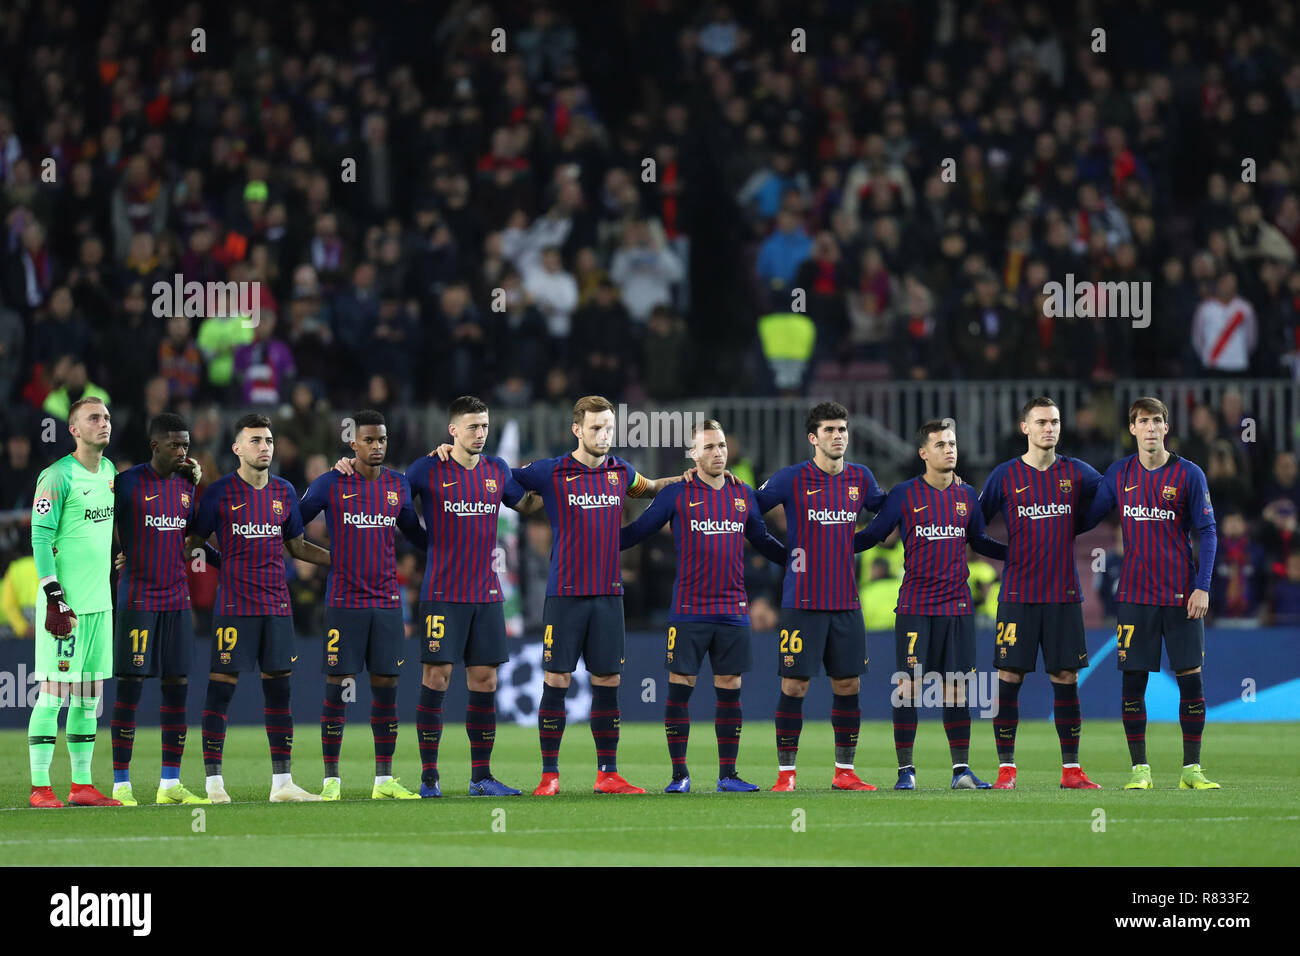 ¿Cuánto mide Munir El Haddadi? - Altura - Real height Barcelona-spain-11th-dec-2018-december-10-2018-barcelona-spain-players-of-barcelona-tand-for-a-minutes-silence-for-the-late-former-fc-barcelona-president-josep-luis-nunez-ahead-of-the-uefa-champions-league-group-b-football-match-between-fc-barcelona-and-tottenham-hotspur-on-december-11-2018-at-camp-nou-stadium-in-barcelona-spain-credit-manuel-blondeauzuma-wirealamy-live-news-R833F2